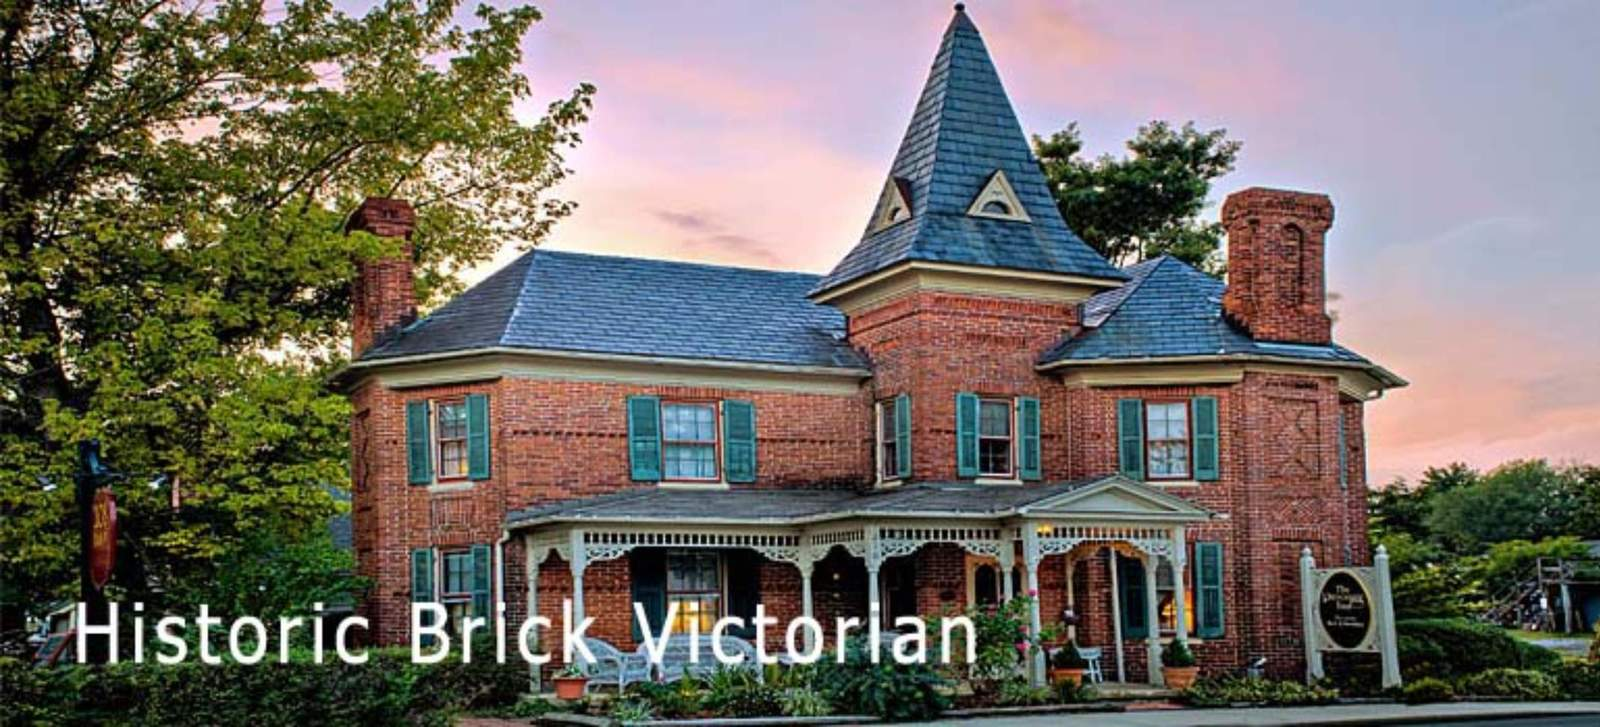 List Of The Best Hotels In Maryland USA From Cheap To